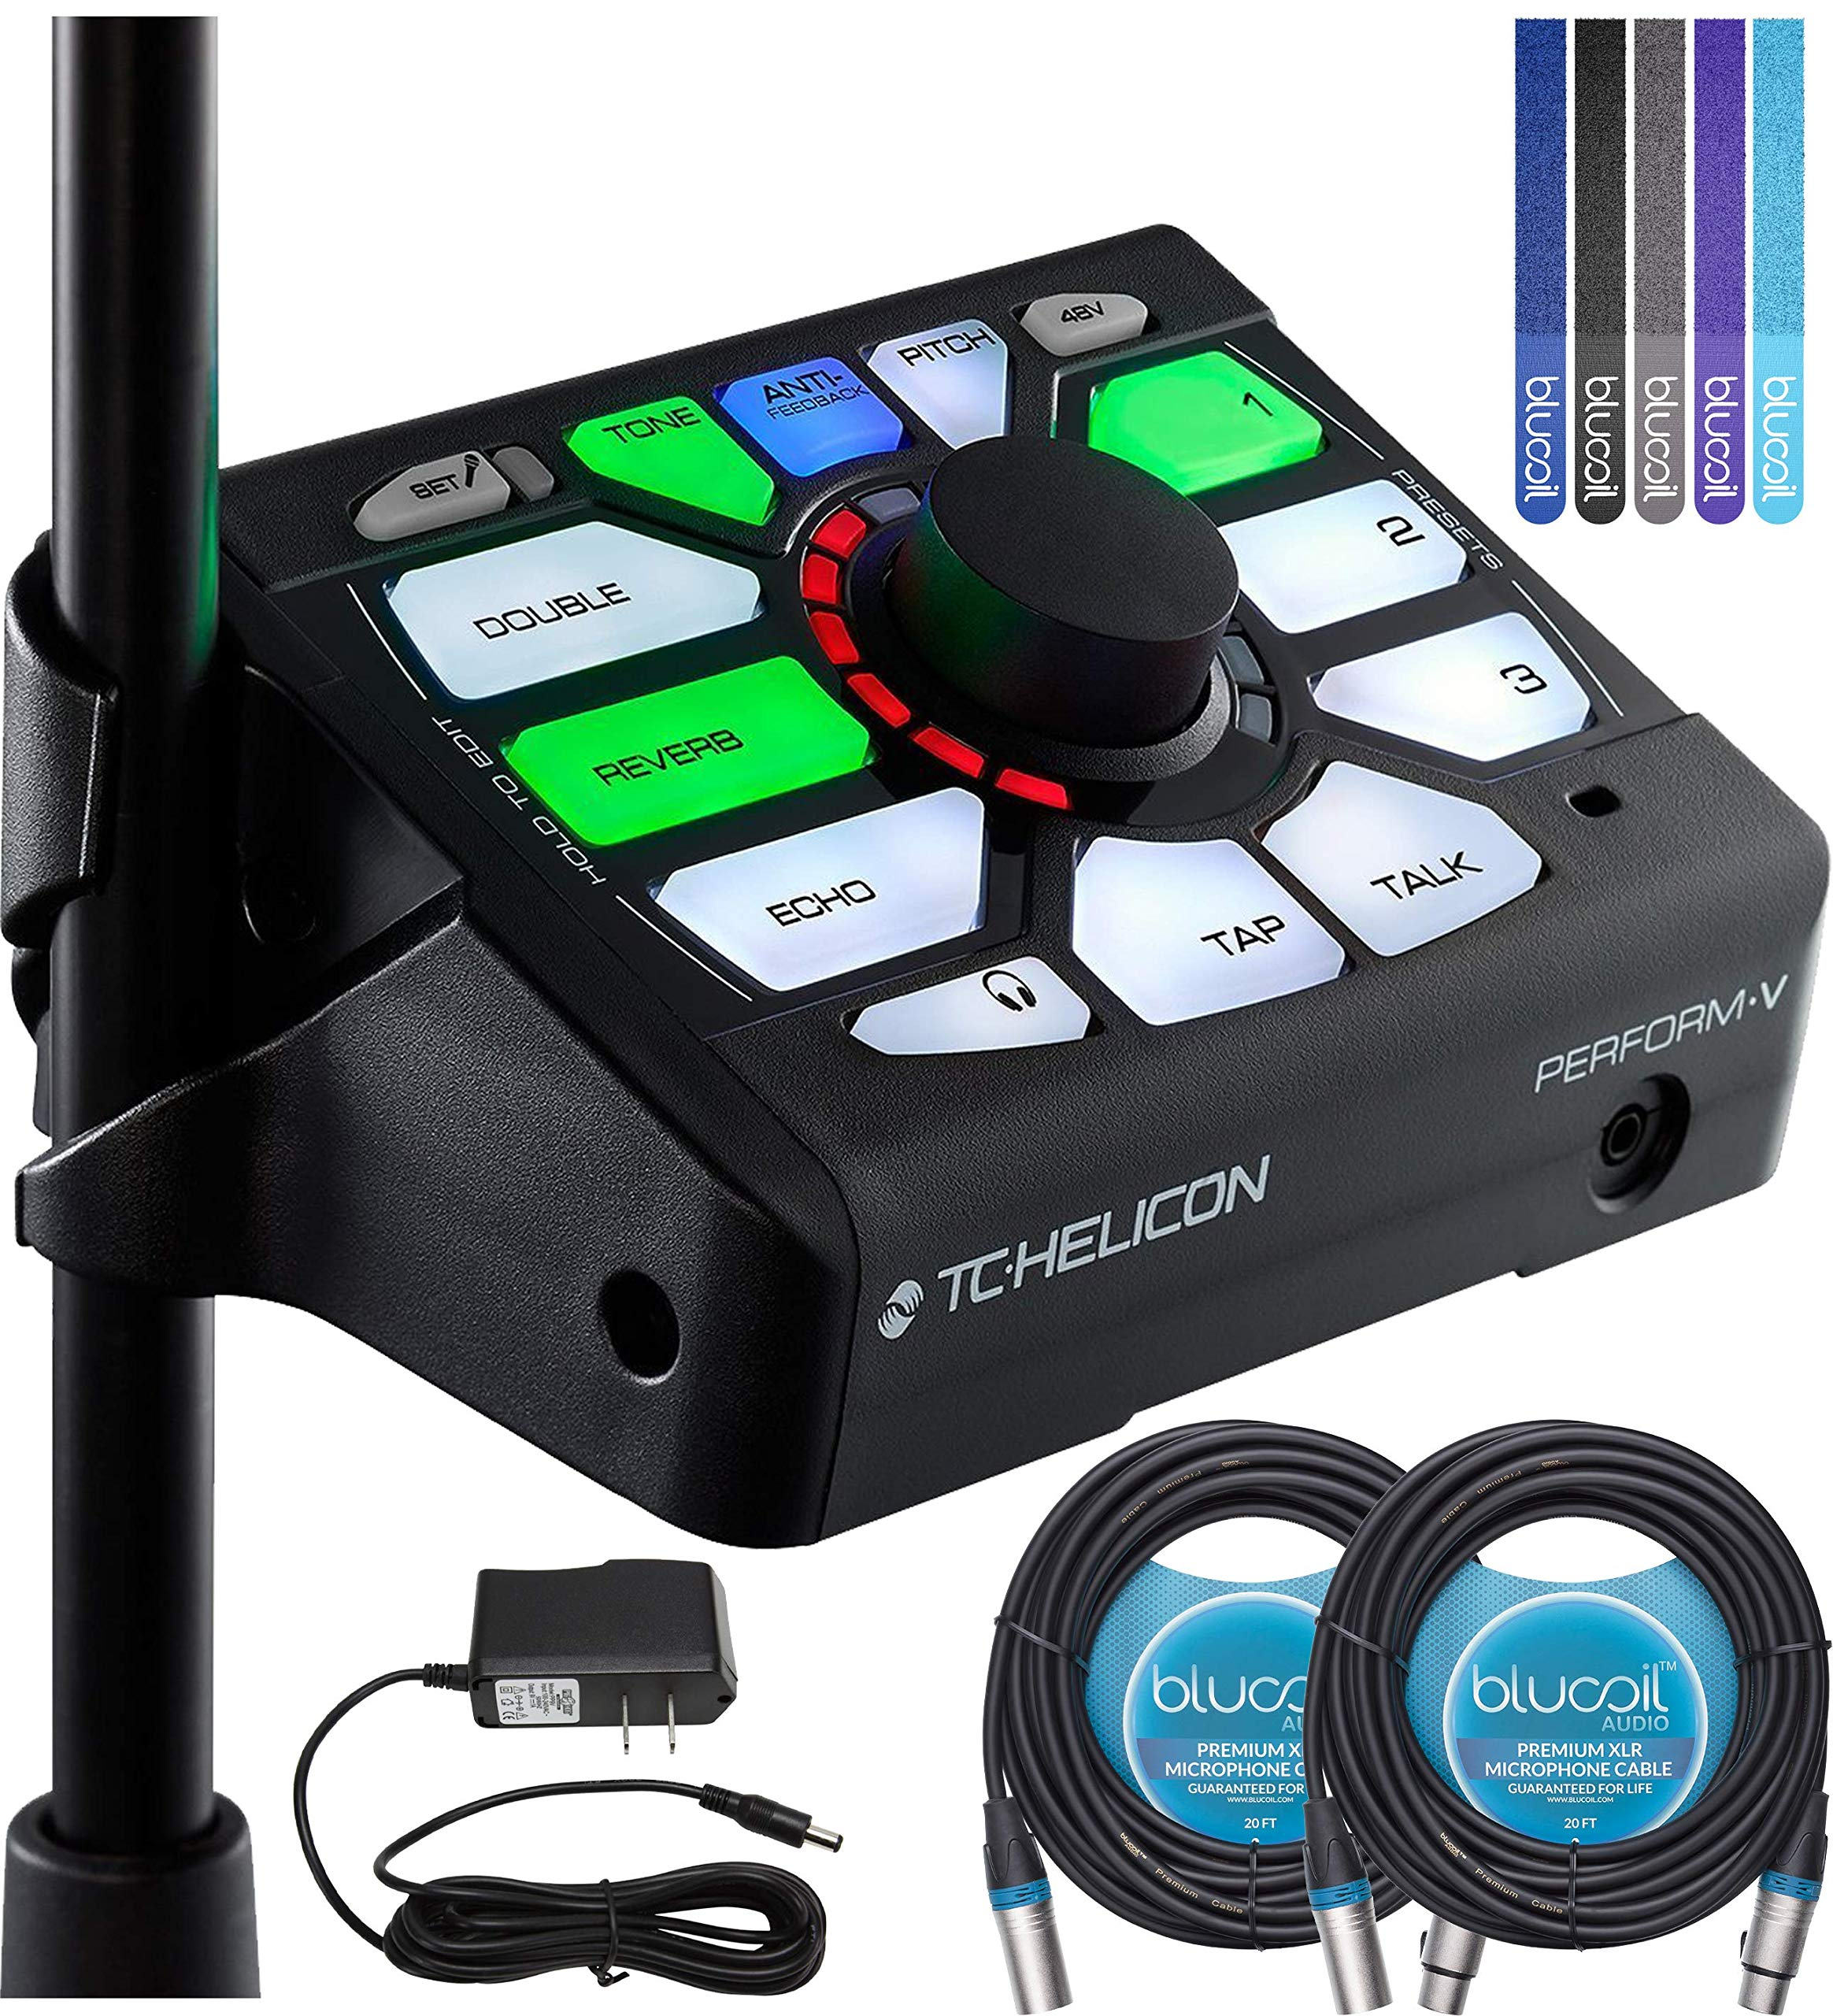 TC Helicon Perform-V Vocal Effects Processor Bundle with 12V 1000mA DC Power Supply, Blucoil 2-Pack of 20-FT Balanced XLR Cables, and 5-Pack of Reusable Cable Ties